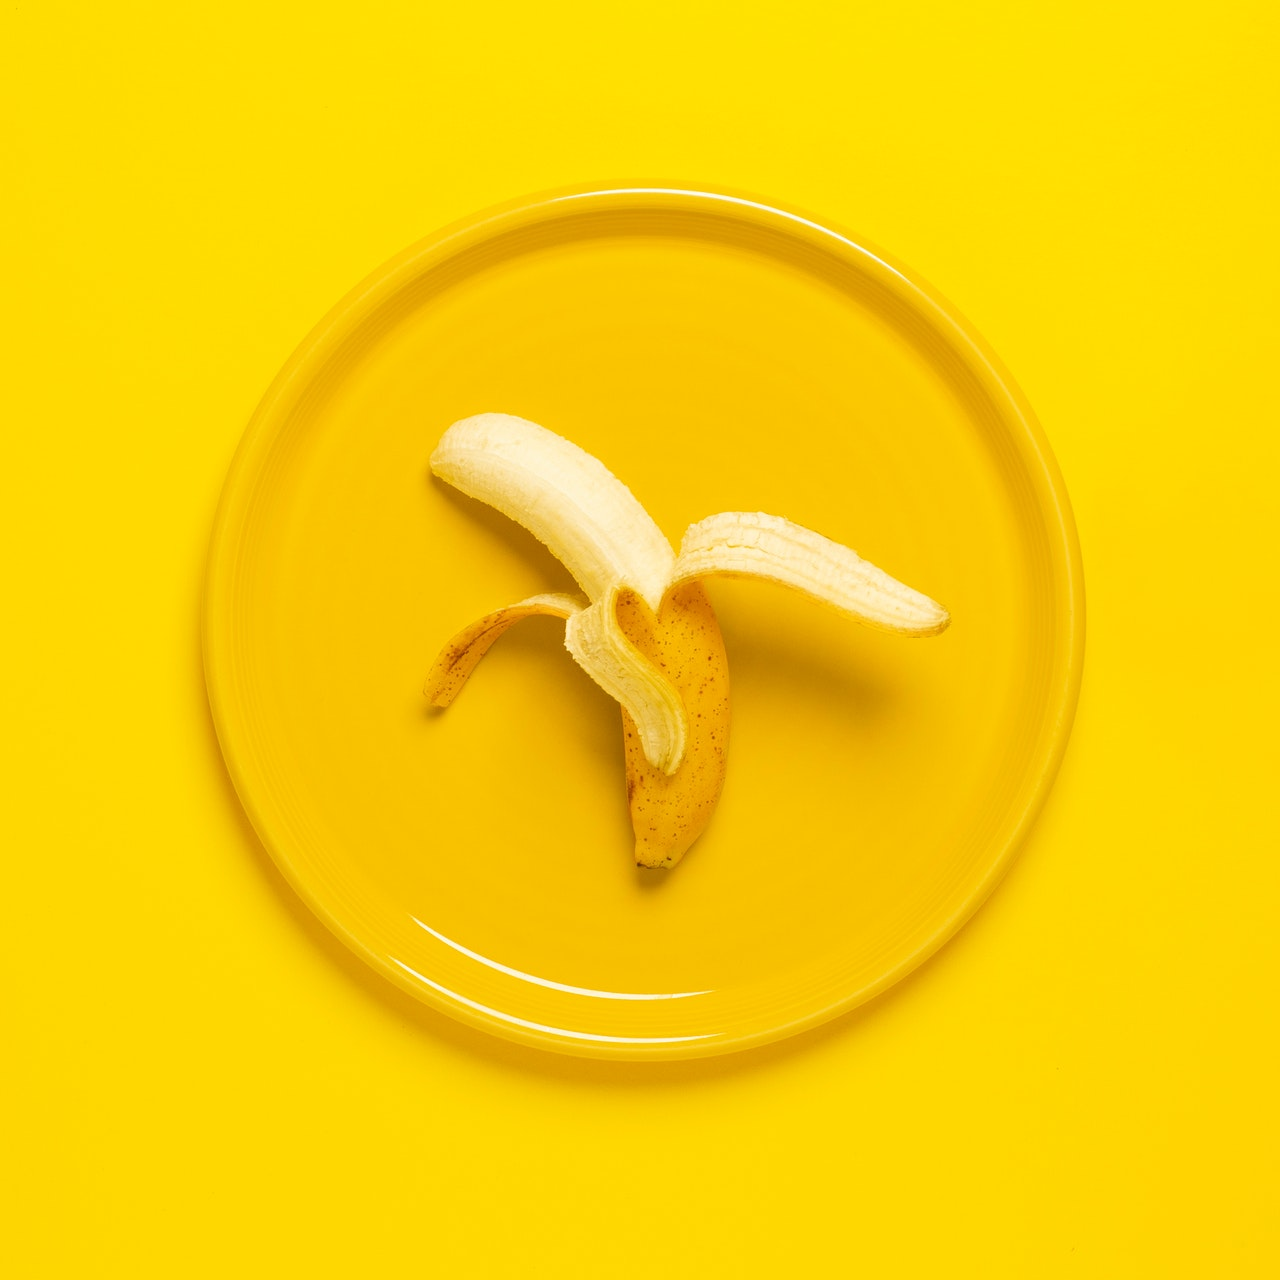 Does Banana Increase Belly Fat: Find Out The Truth!